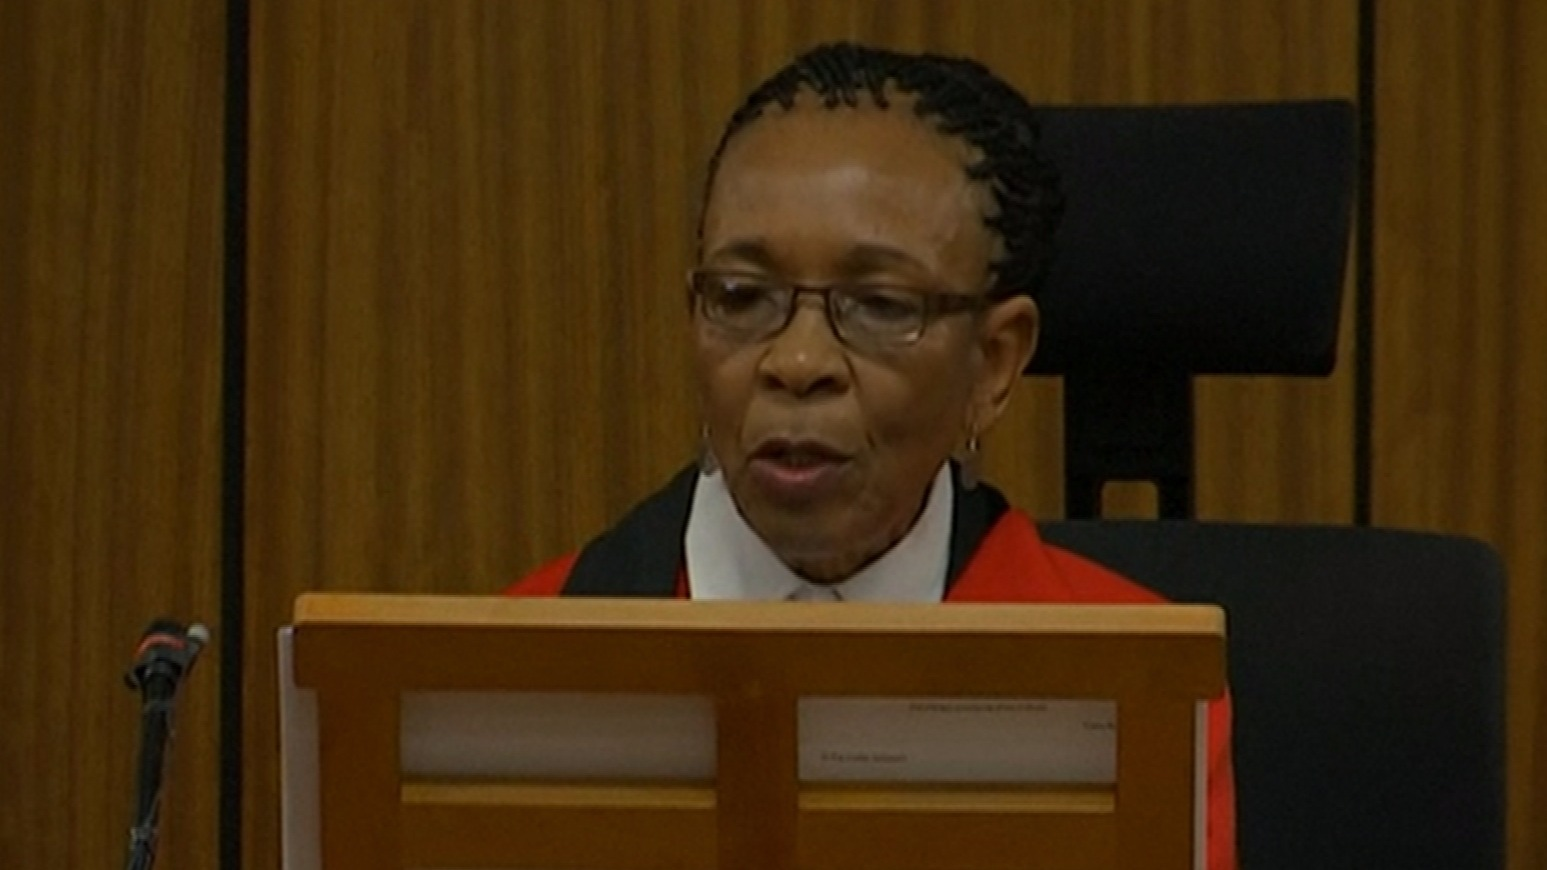 Pistorius Sentencing Hearing Gets Under Way as well Oscar Pistorius To Be Sentenced For Murder On July 6 as well  moreover Euro 2016 Hungary Surprise Upset Over Austria 20160614 4gi9p furthermore Pistorius Attacked Steenk  With Cricket Bat Before Shooting Her Dead. on oscar pistorius sentencing update 2016